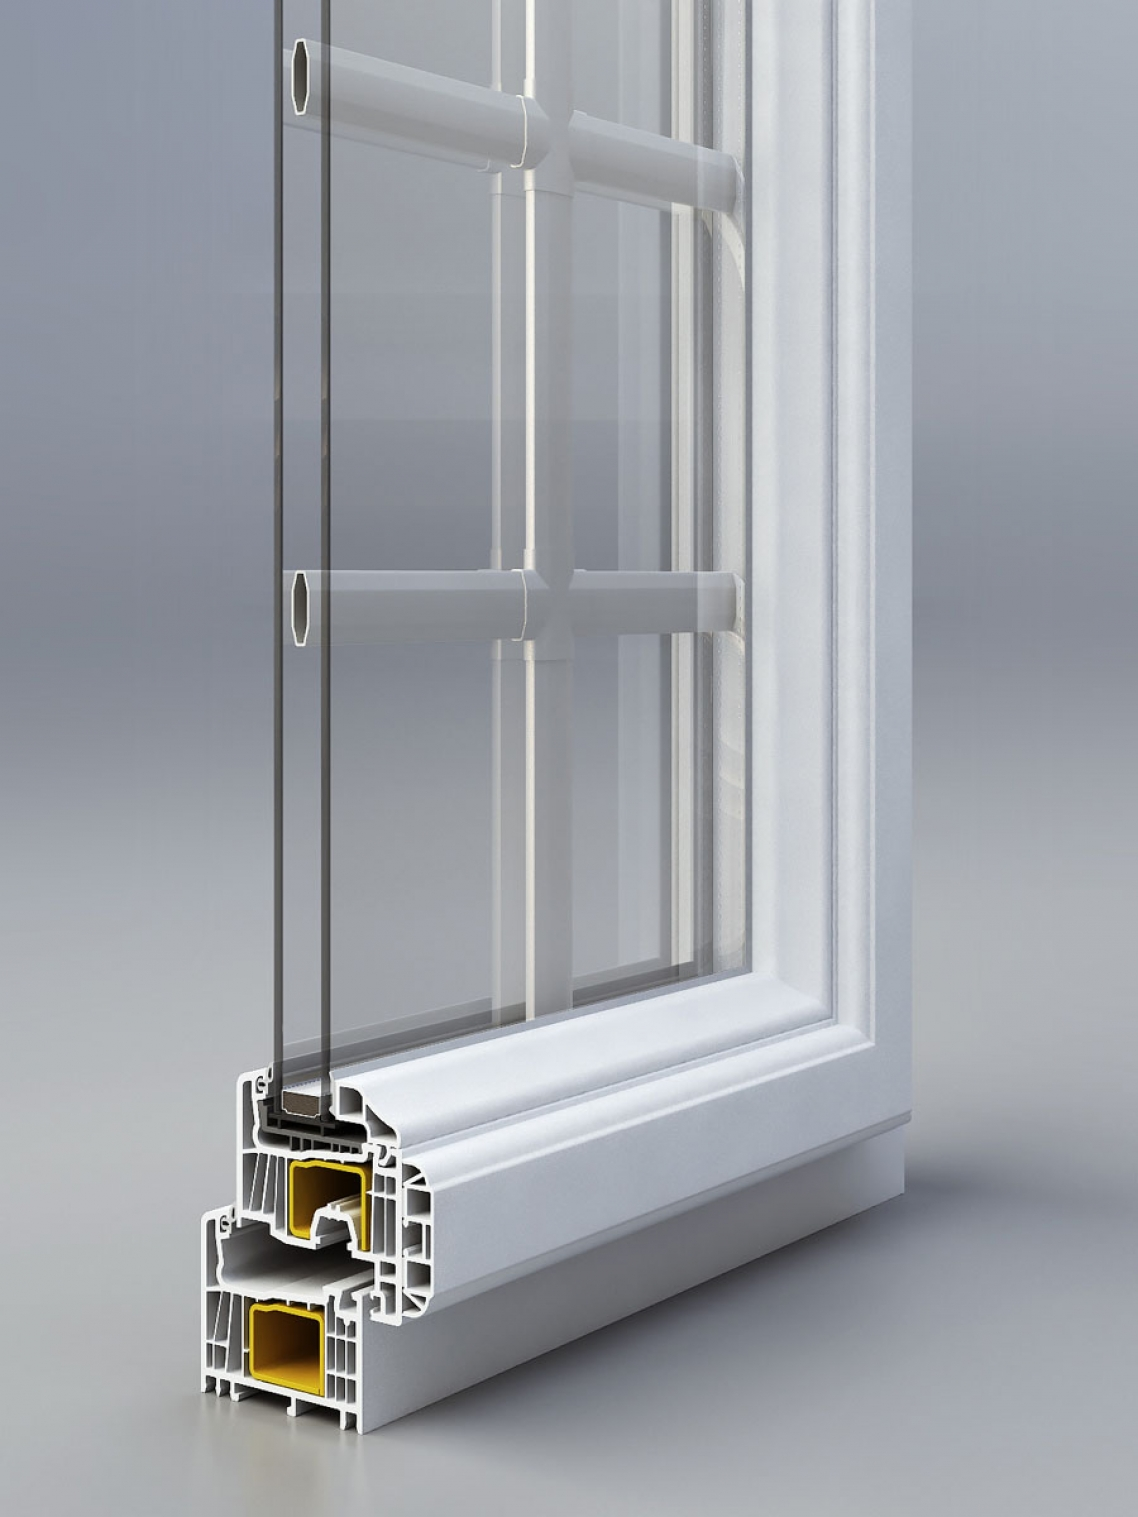 Inglesina Sash windows pvc finestrenurith